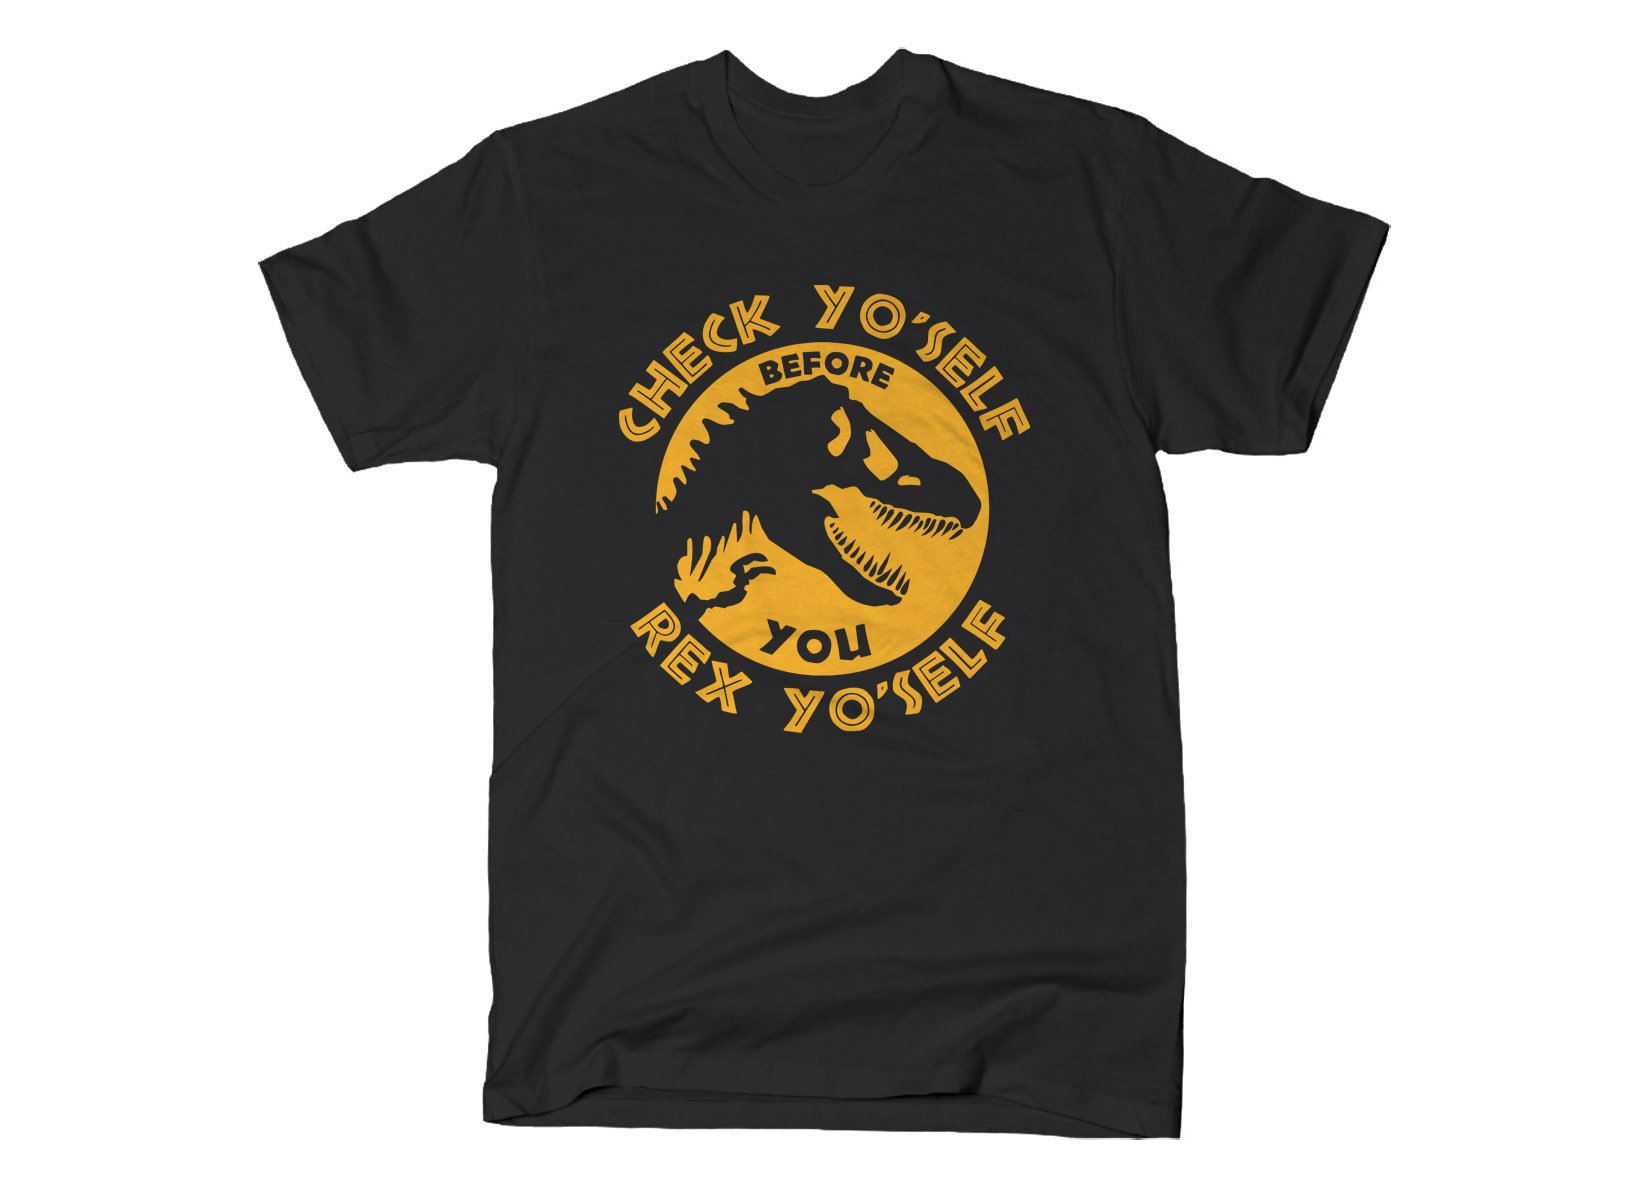 Check Yo'Self Before You Rex Yo'Self on Mens T-Shirt